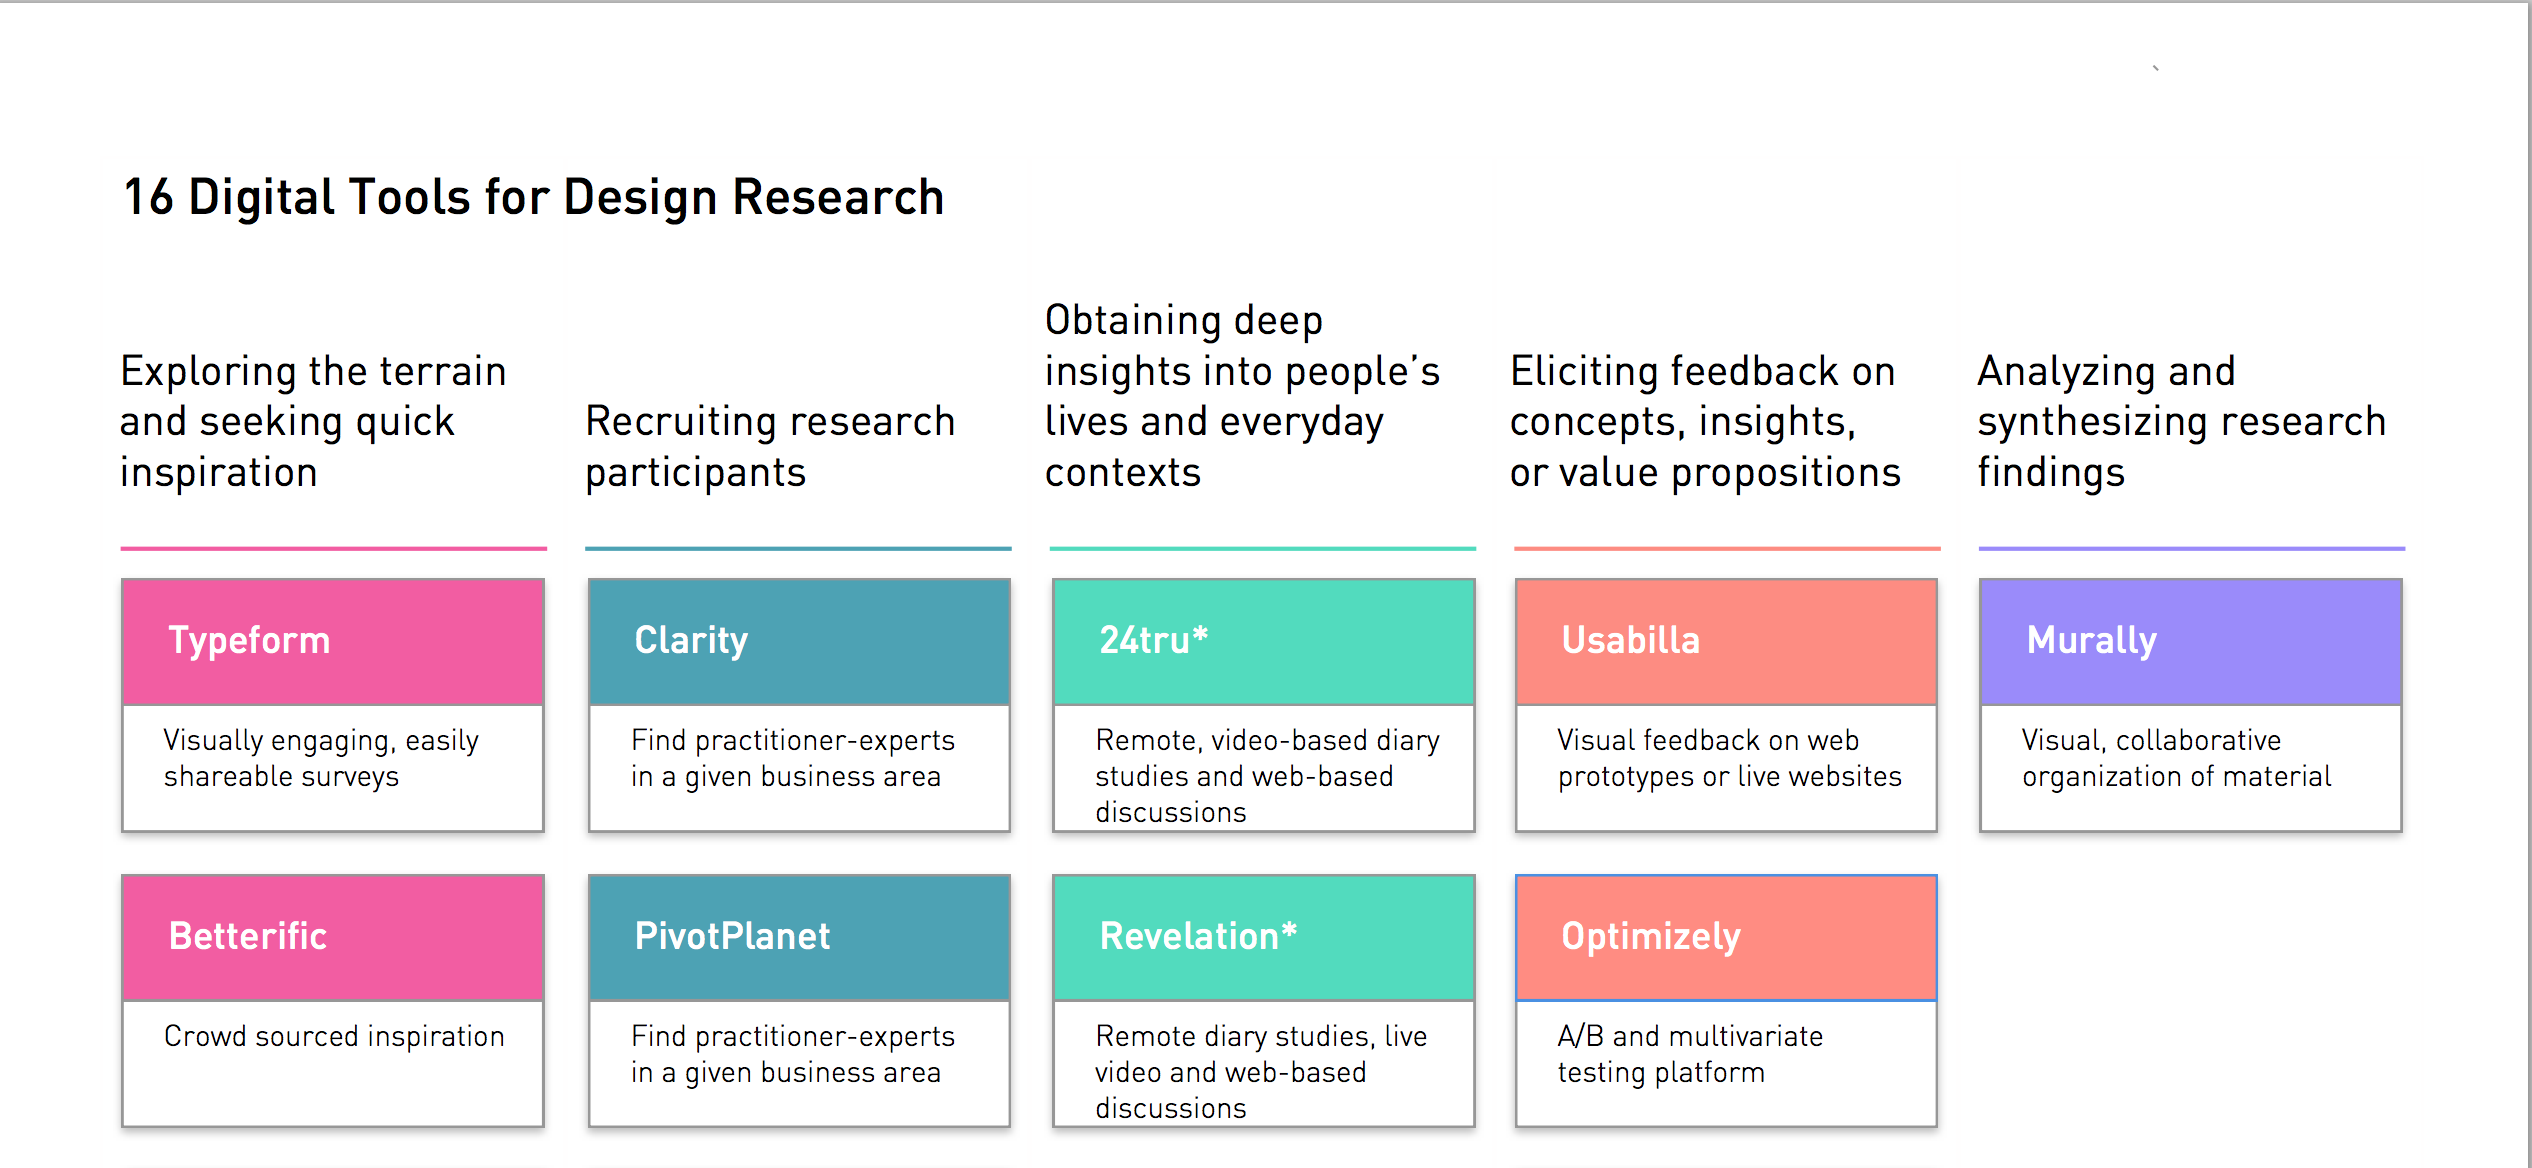 16 Digital Tools for Design Research